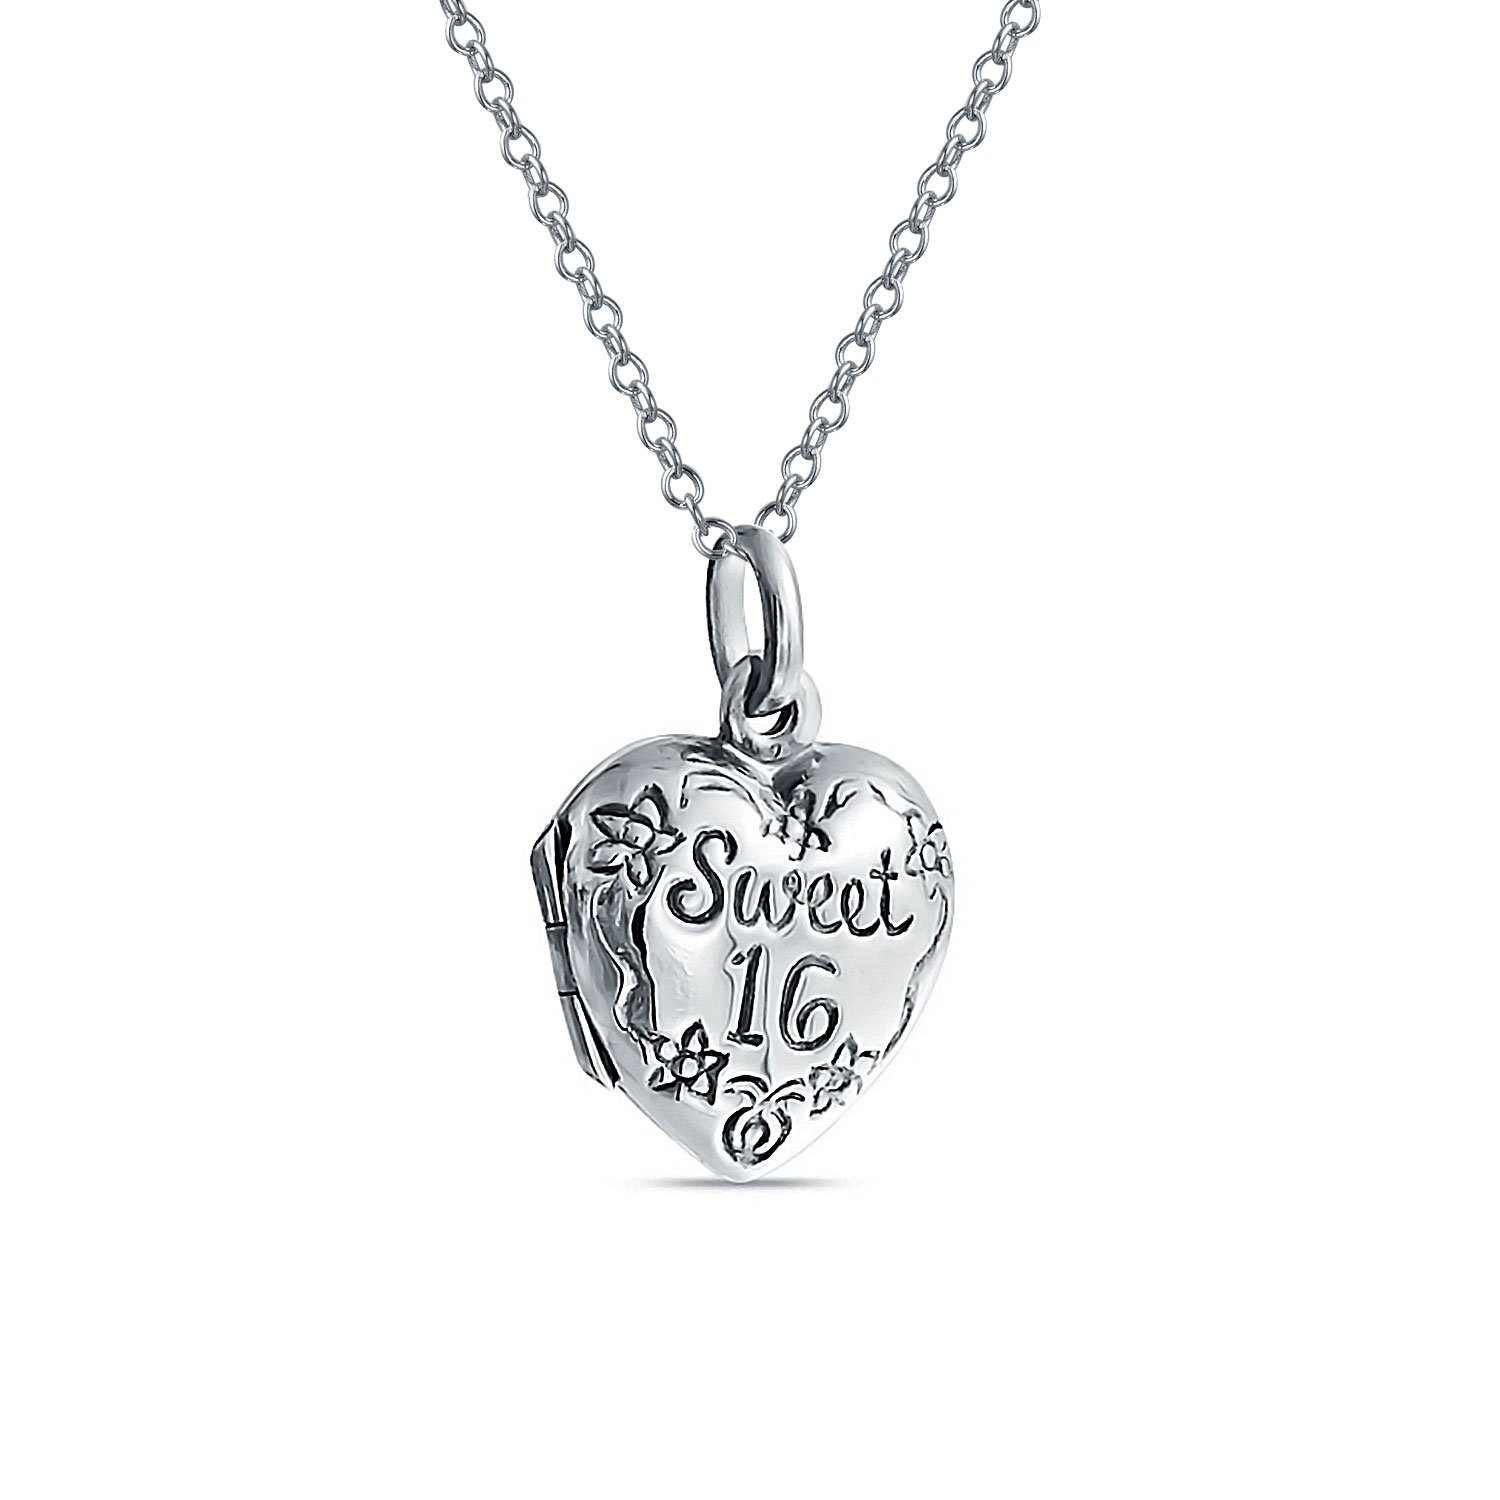 Bling Jewelry Flower Sweet 16 Heart Locket Pendant Sterling Silver Necklace 18 Inches PMR-L10124